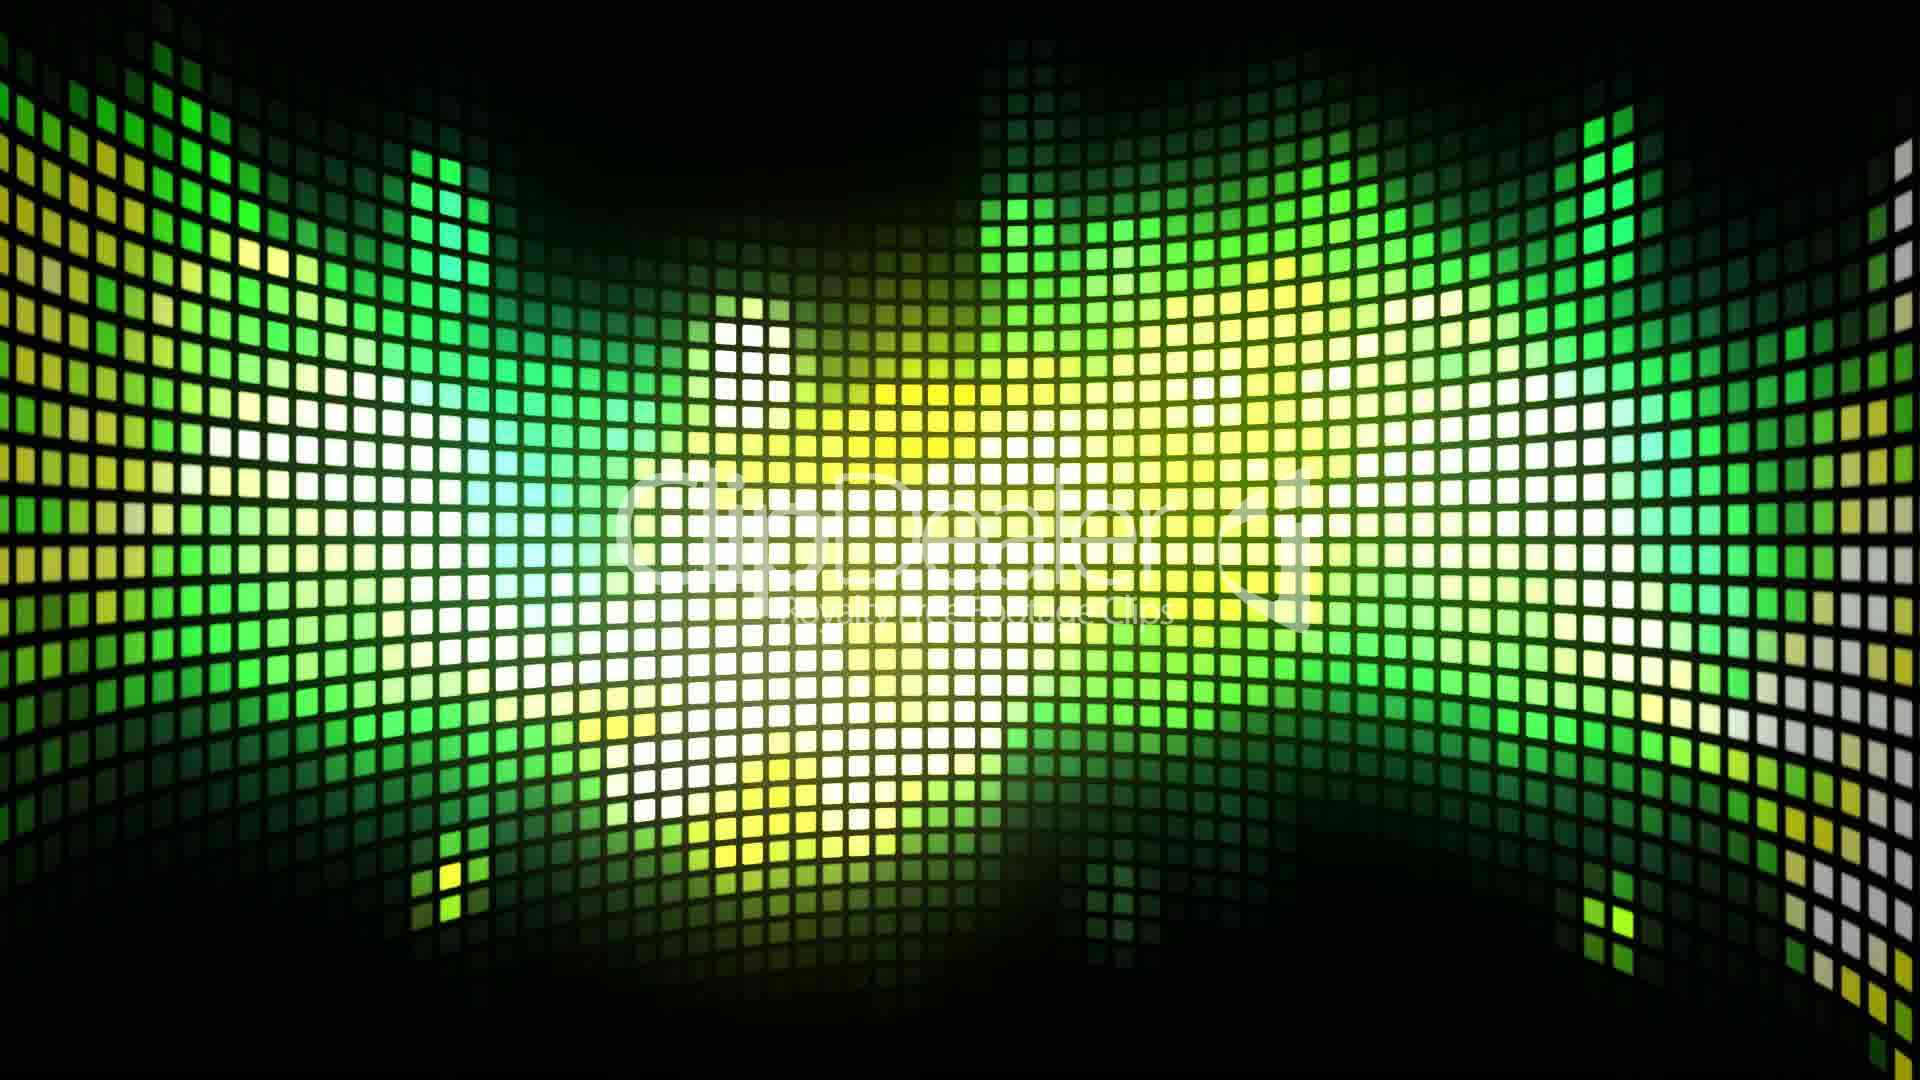 Dance Music Light Box Background Royalty Free Video And Stock Footage